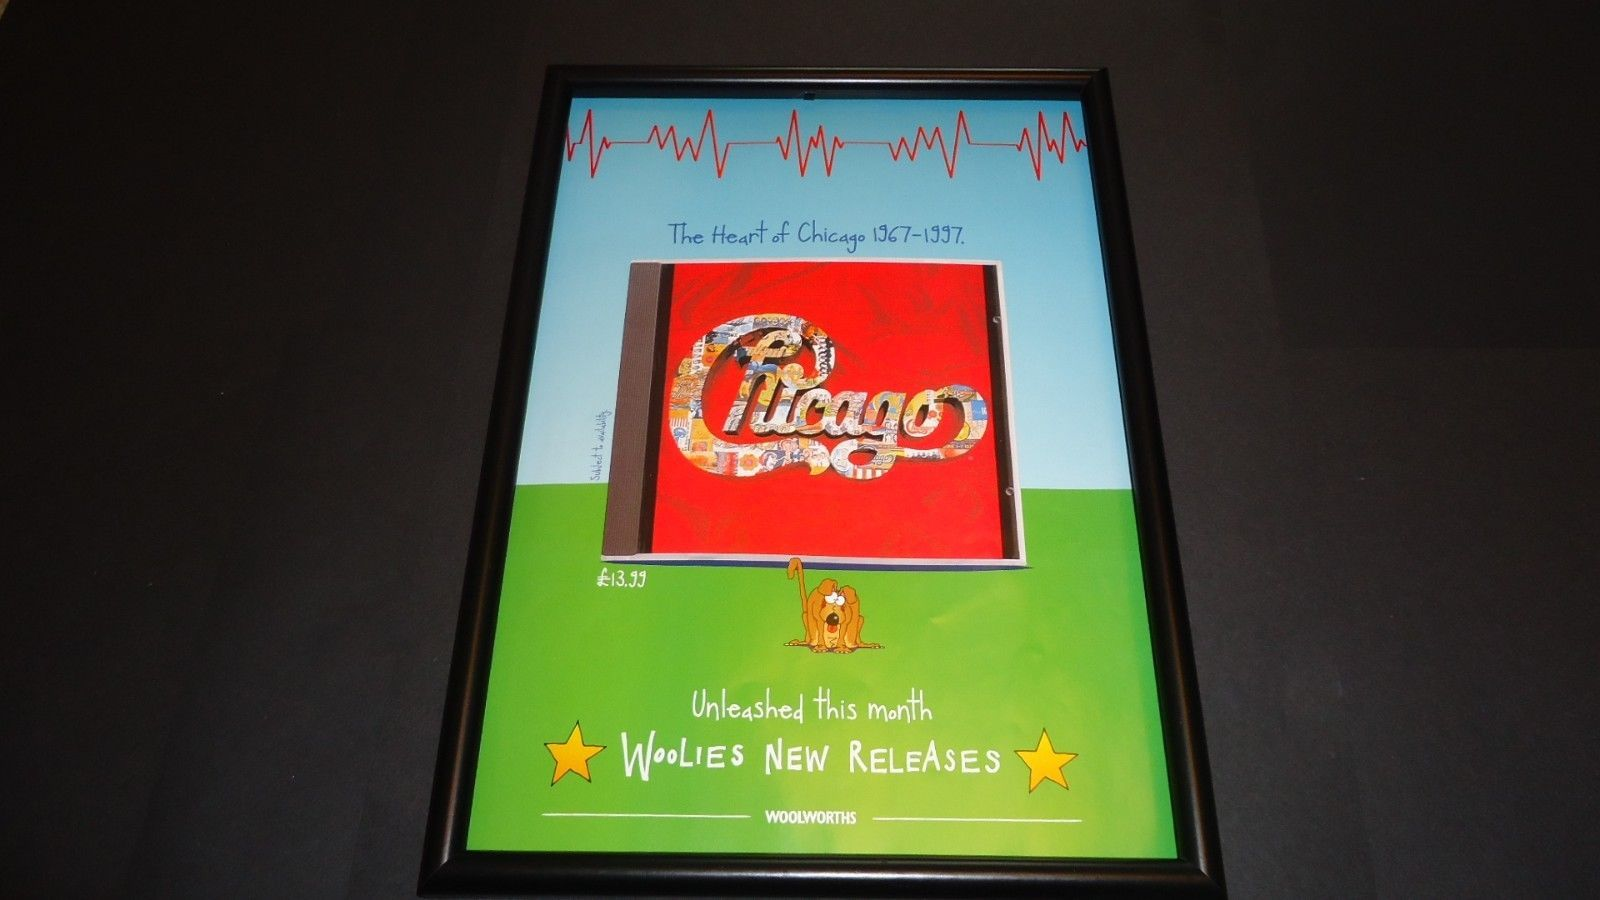 Primary image for Chicago-The heart of chicago-original advert framed